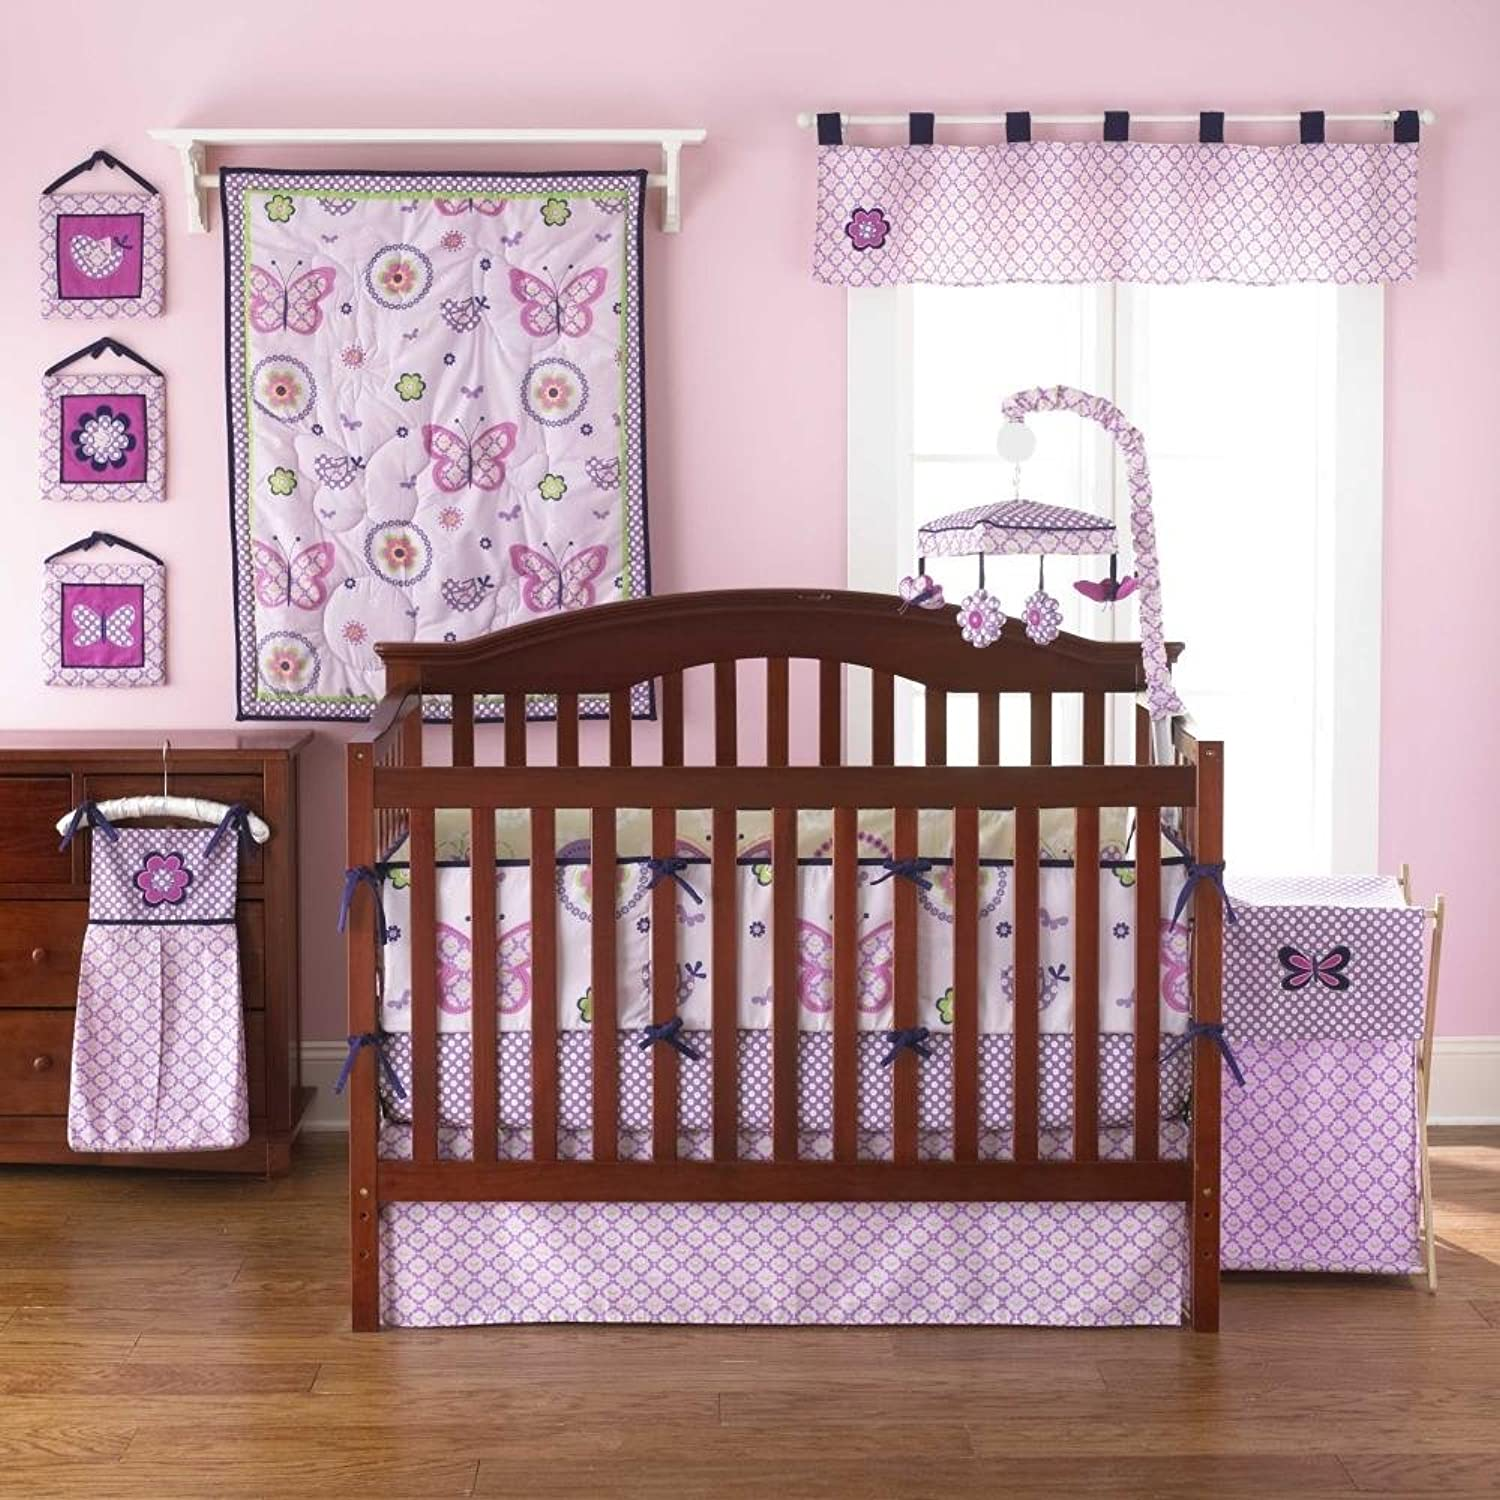 Flutter Reversible 4 Piece Baby Crib Bedding Set by Too Good by Jenny